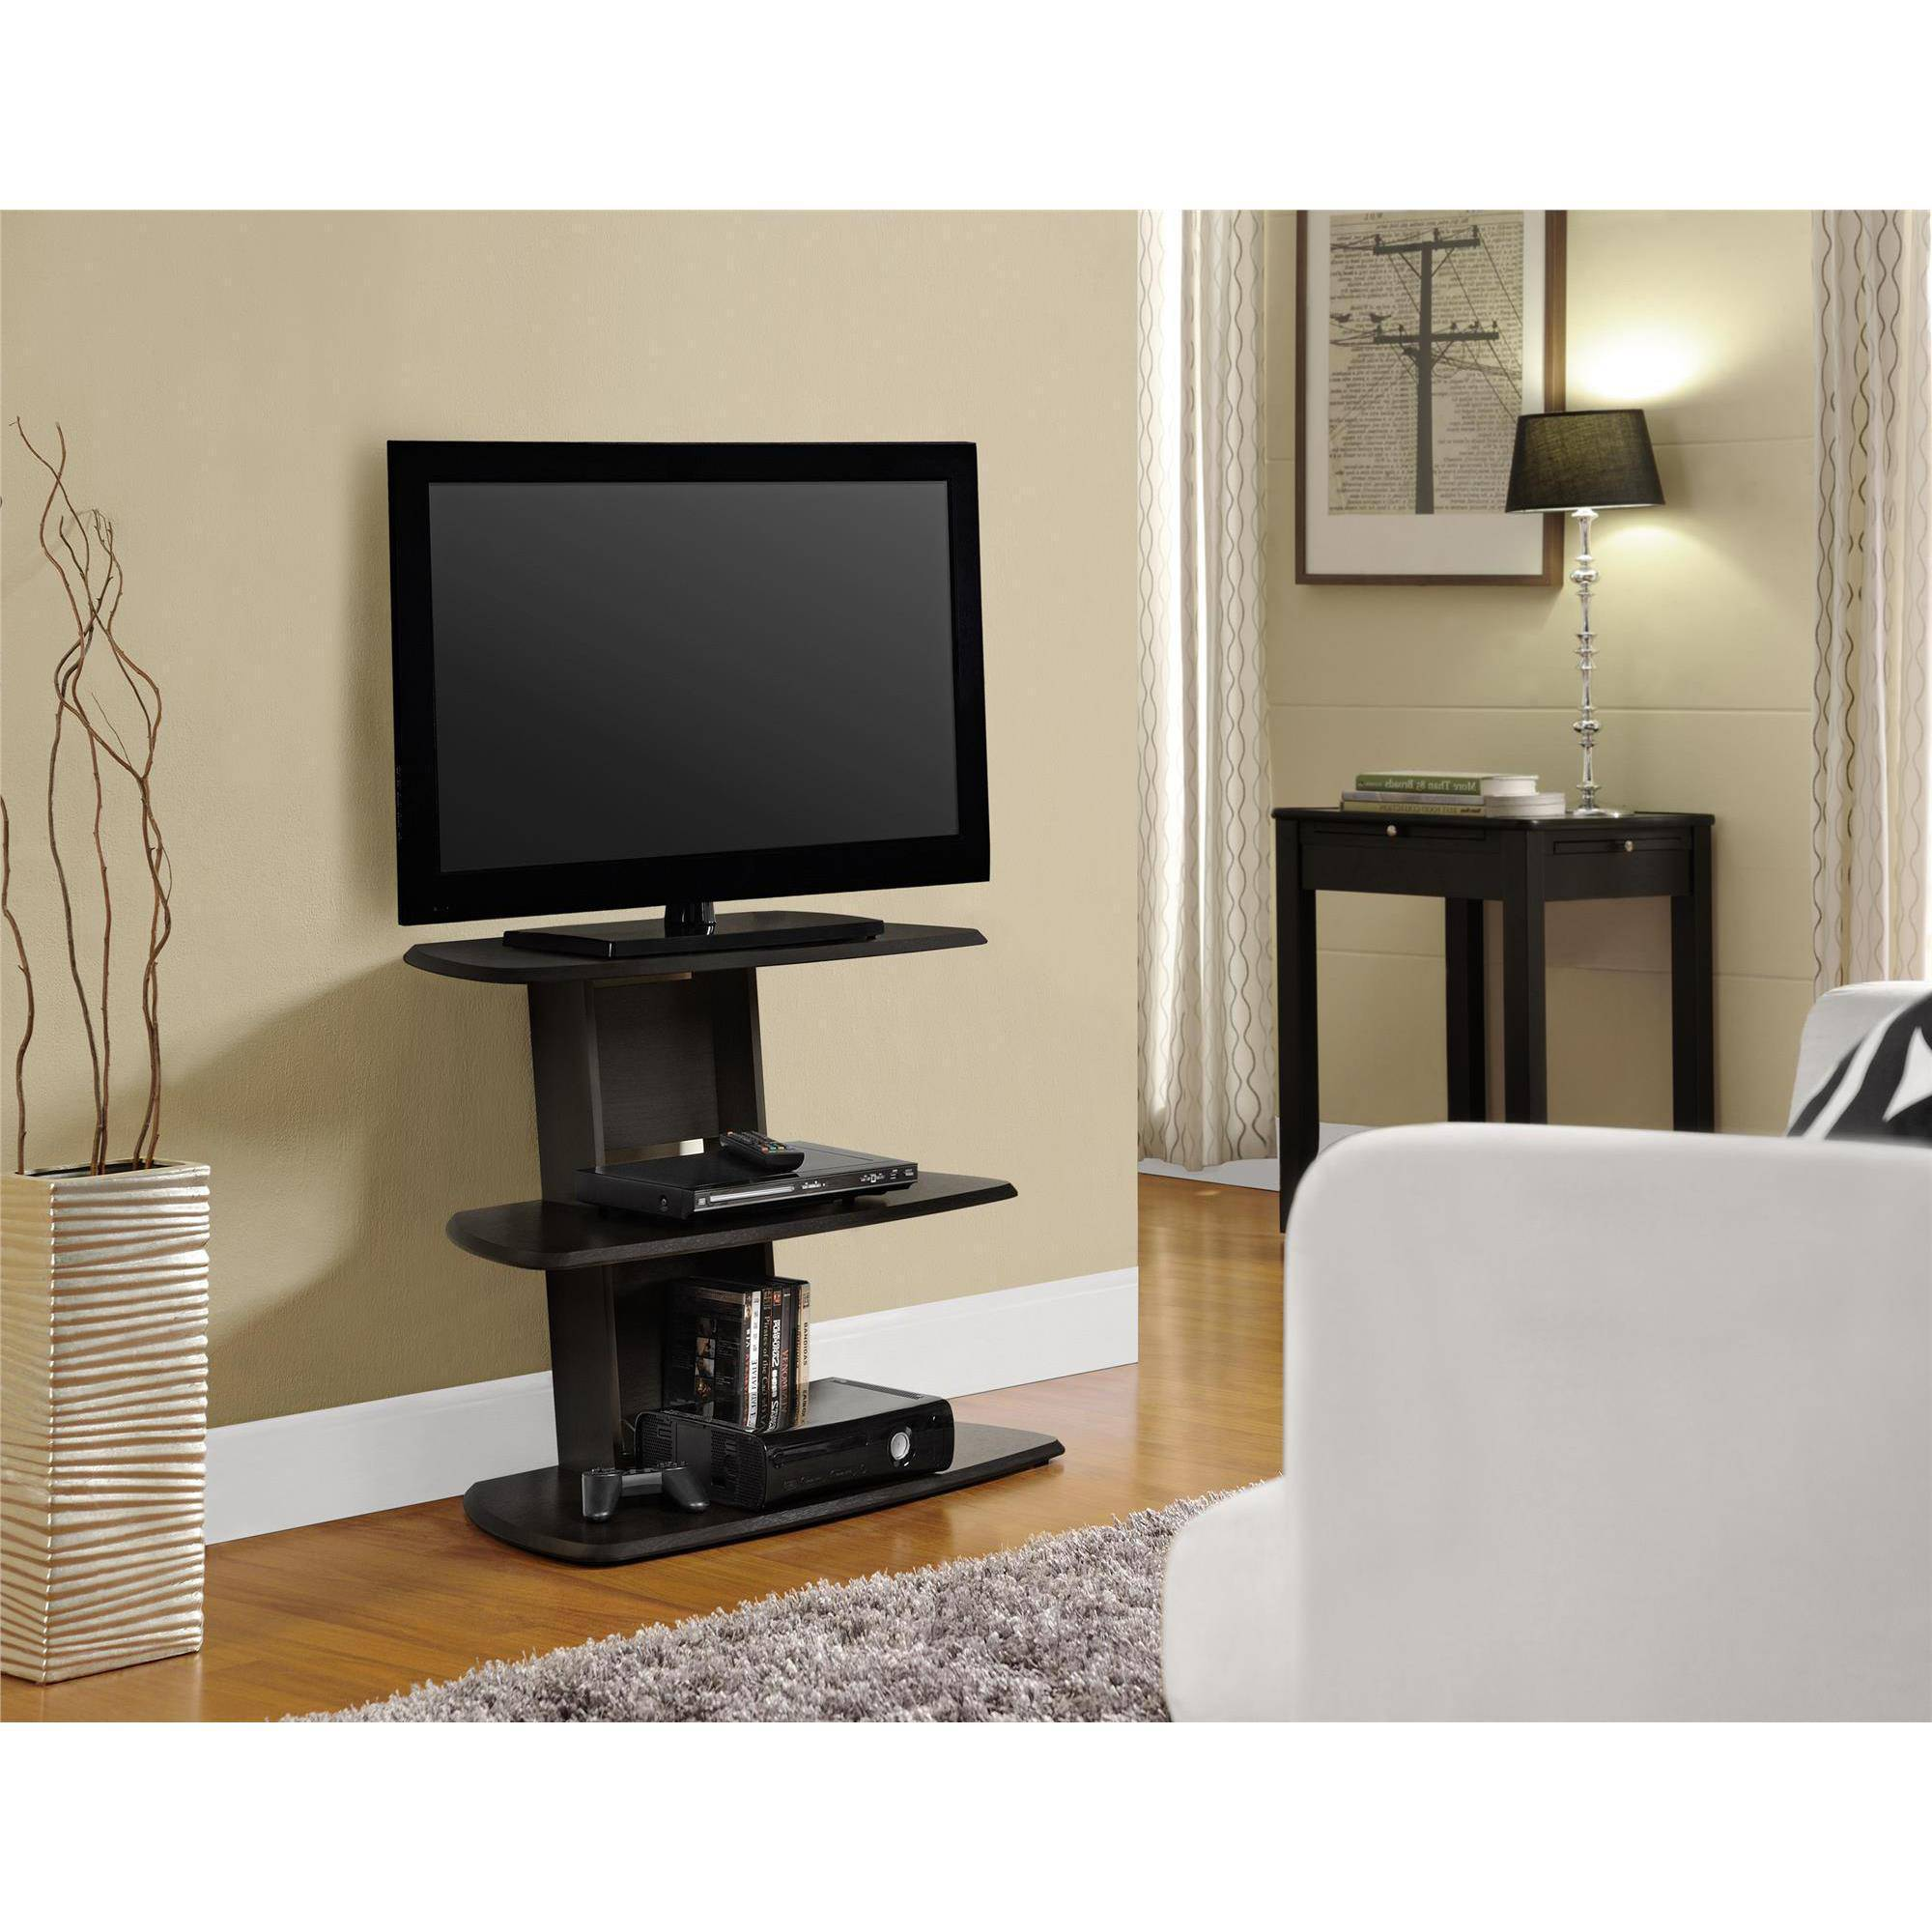 Altra Galaxy II Espresso TV Stand for TVs up to 32""